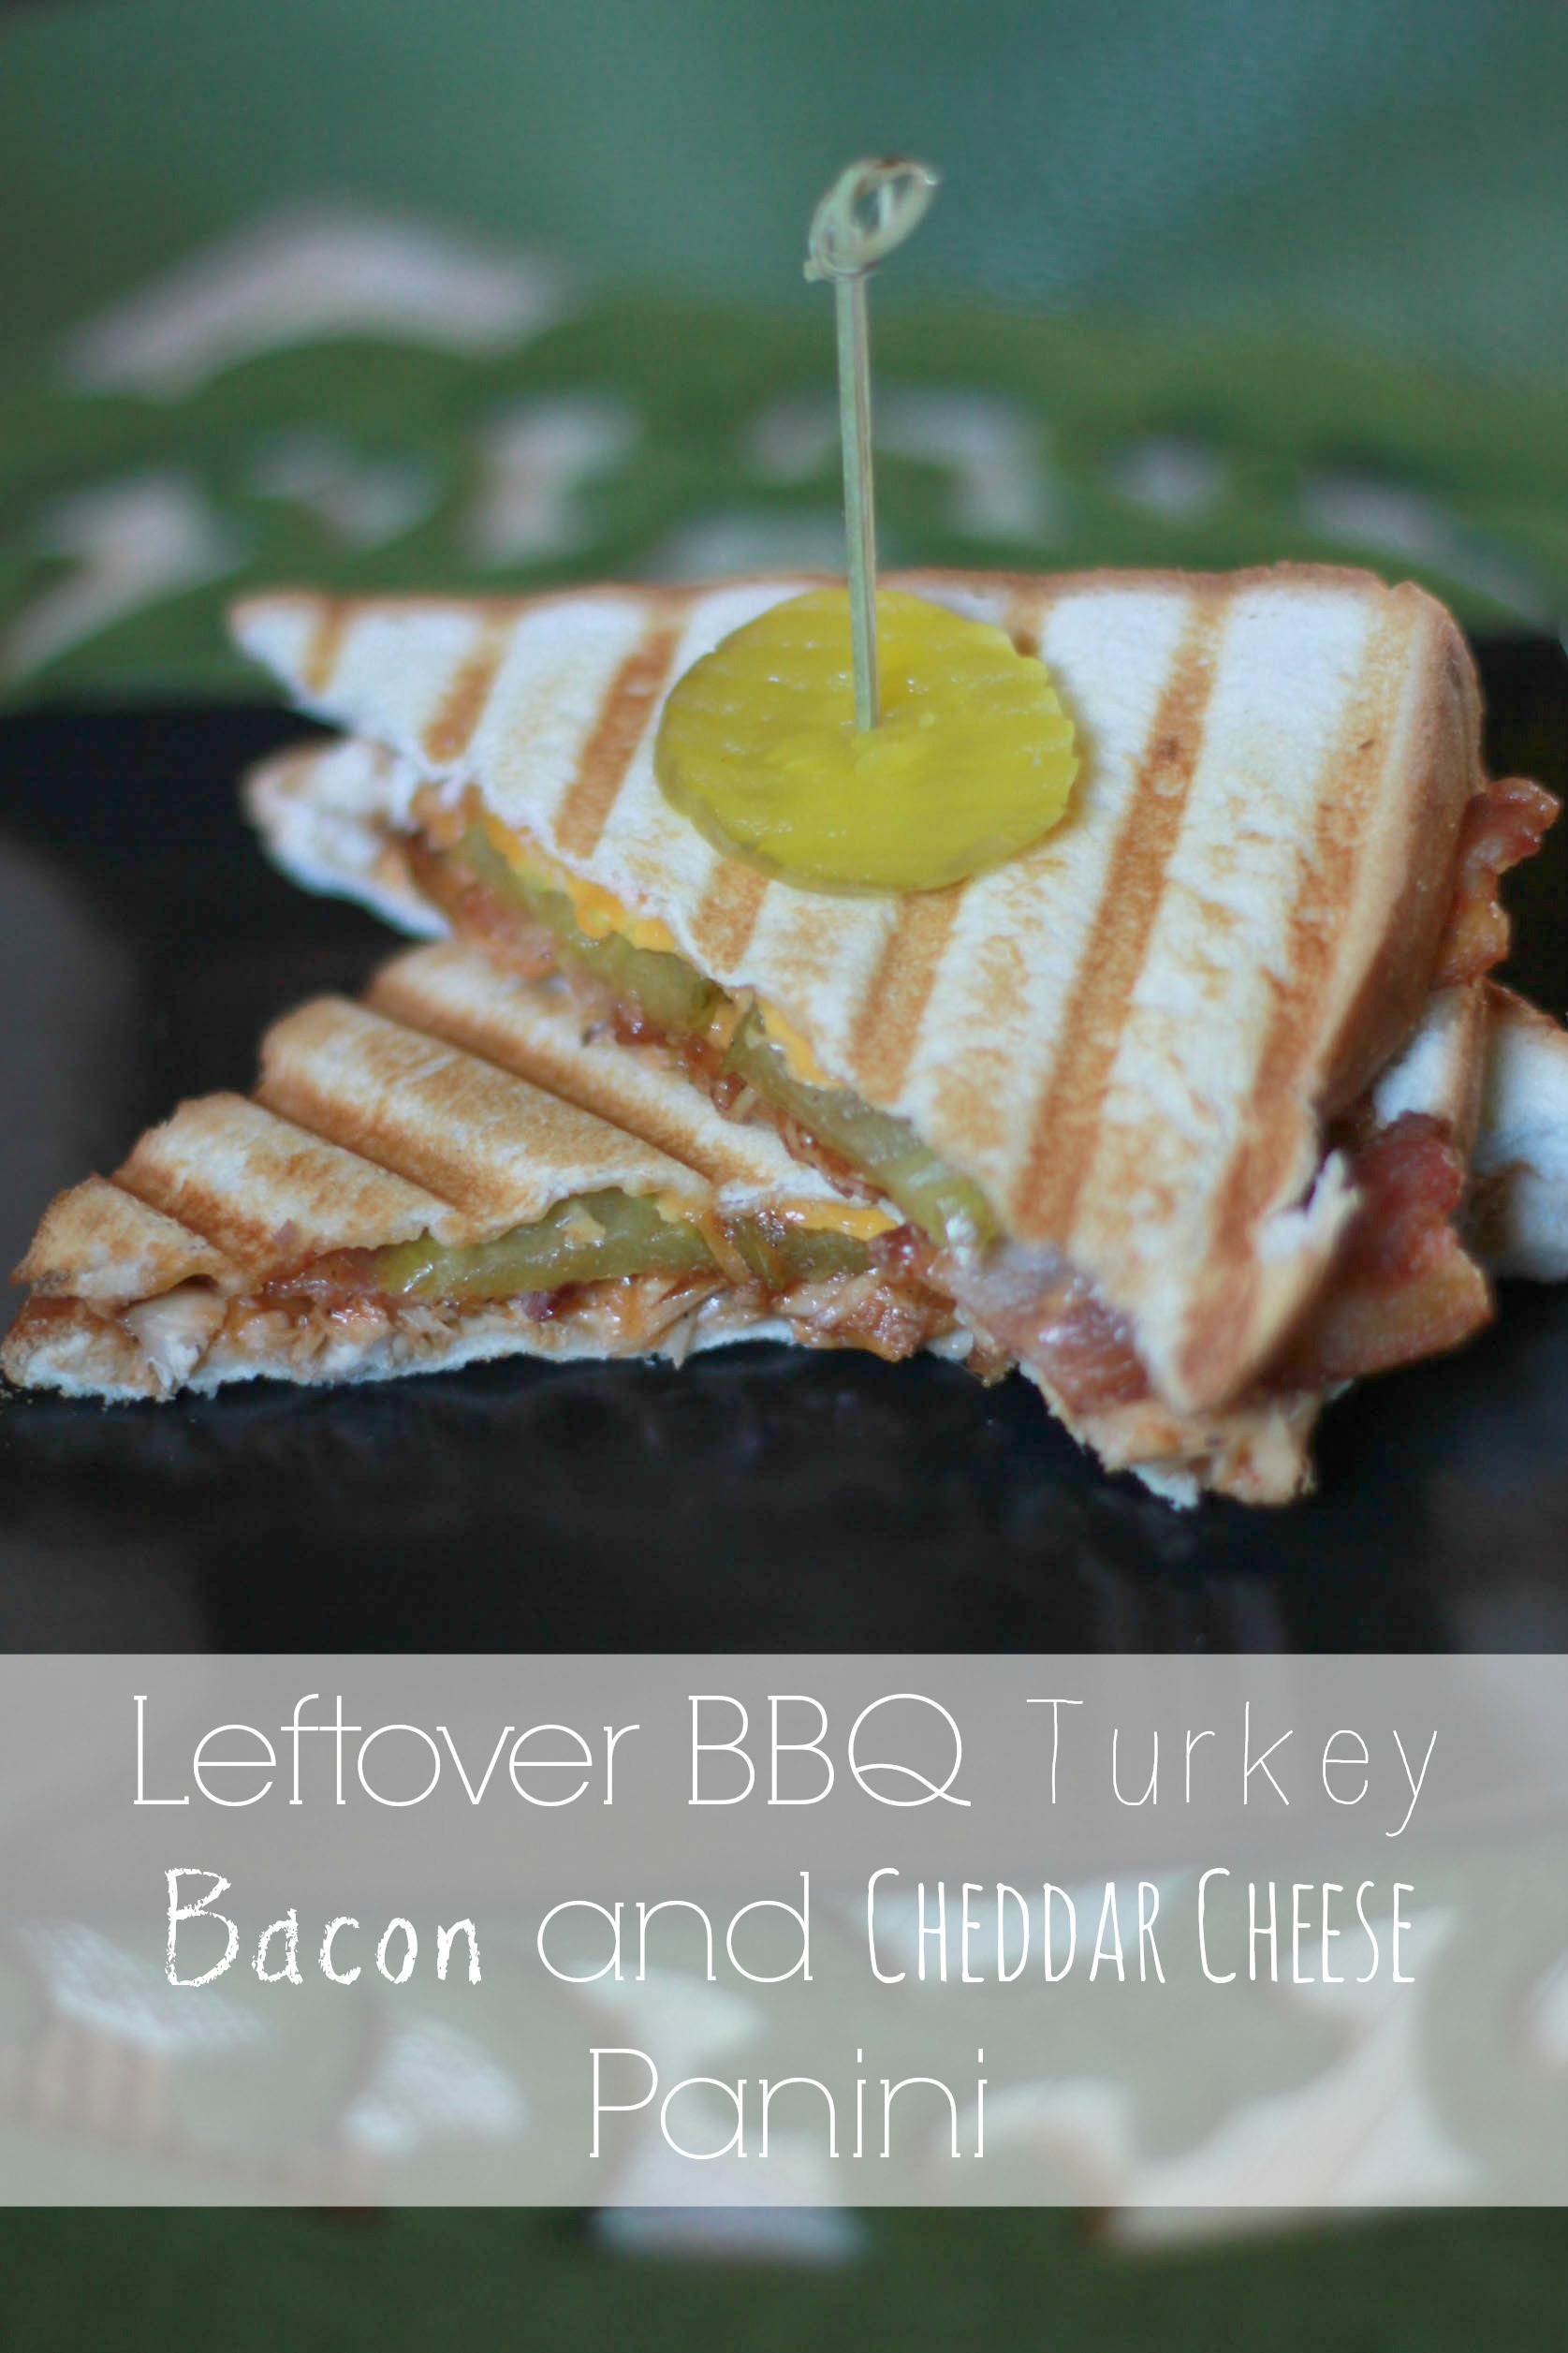 Got some Thanksgiving leftovers you need to use up? Try this Leftover BBQ Turkey Bacon and Cheddar Cheese Panini using lefotver turkey!